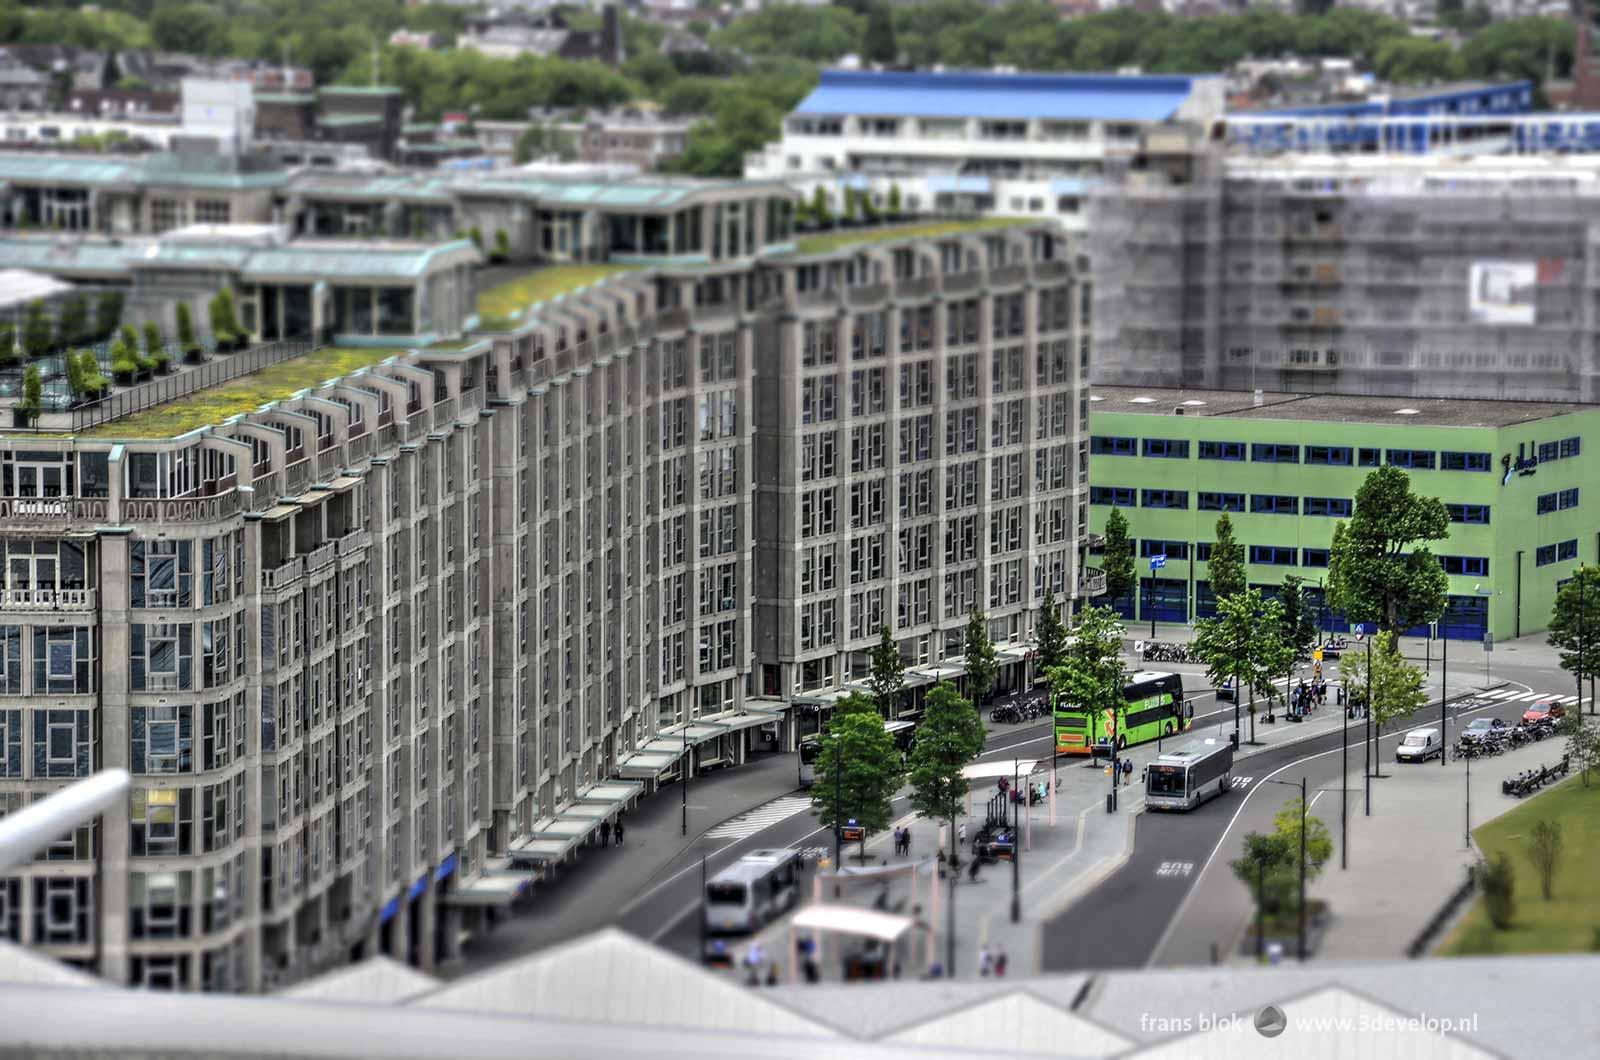 The Miniworld or Madurodam effect on a photo of Groothandelsgebouw in Rotterdam